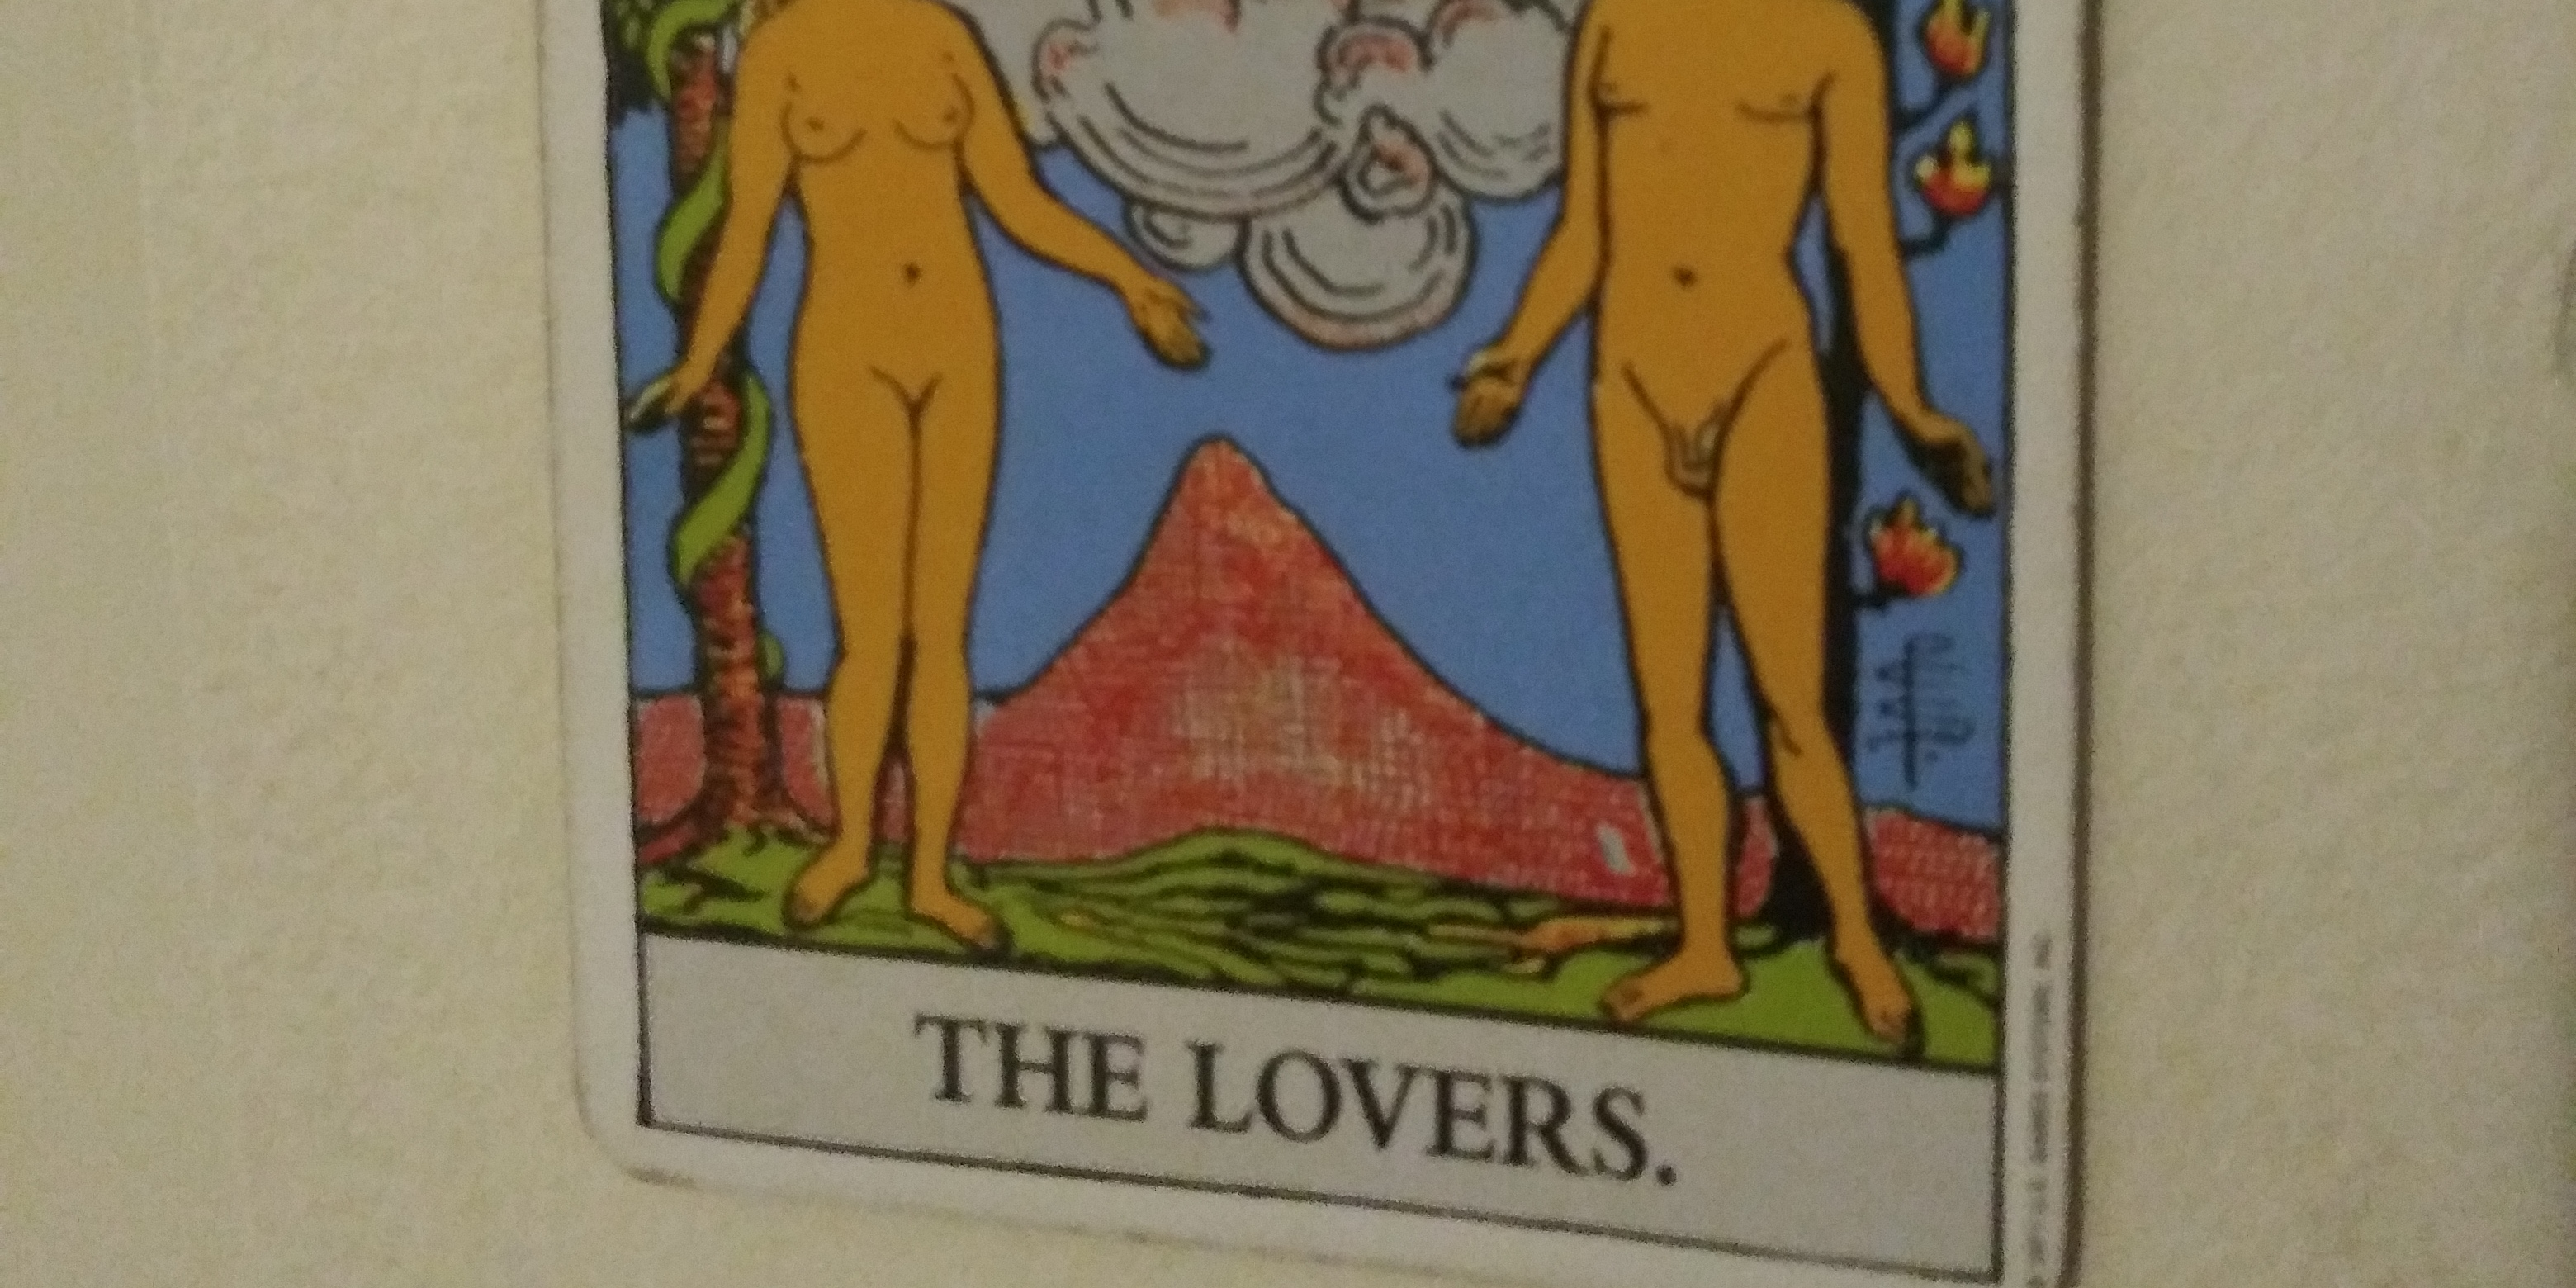 Psychic love advisor